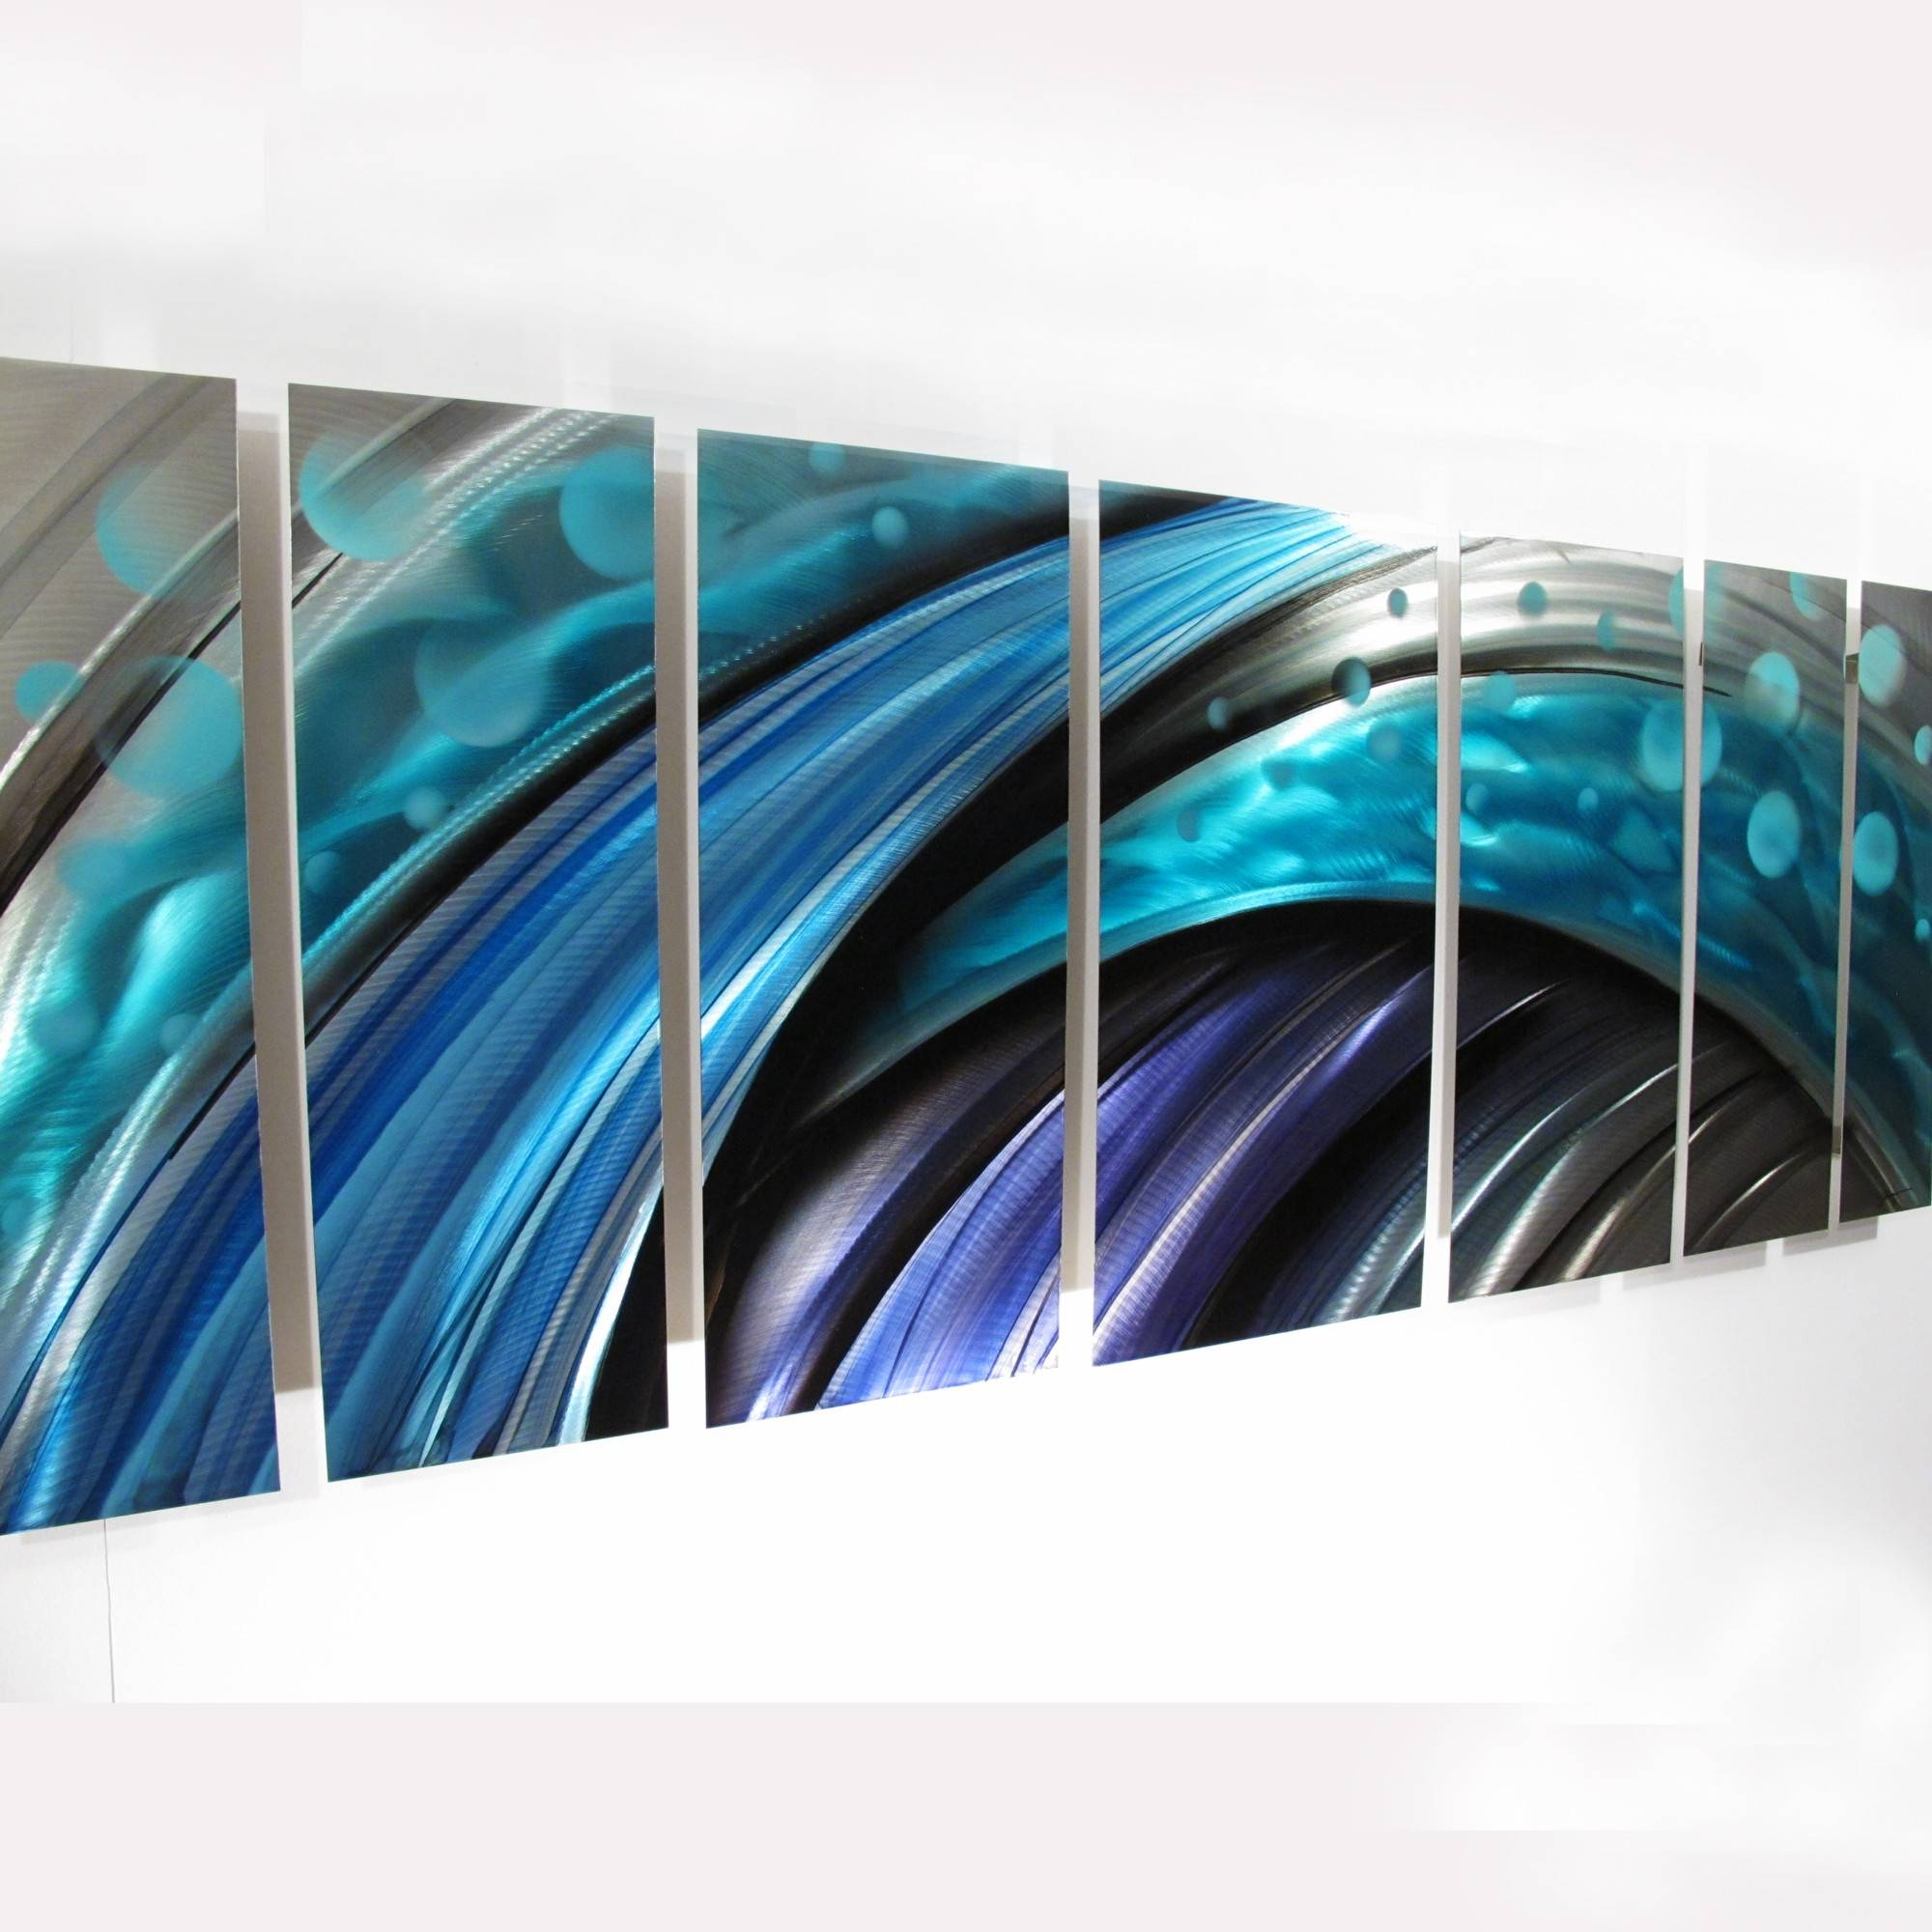 Large Metal Wall Art Photo Pic Large Metal Wall Art – Home Decor Ideas With Most Recent Large Teal Wall Art (View 11 of 20)